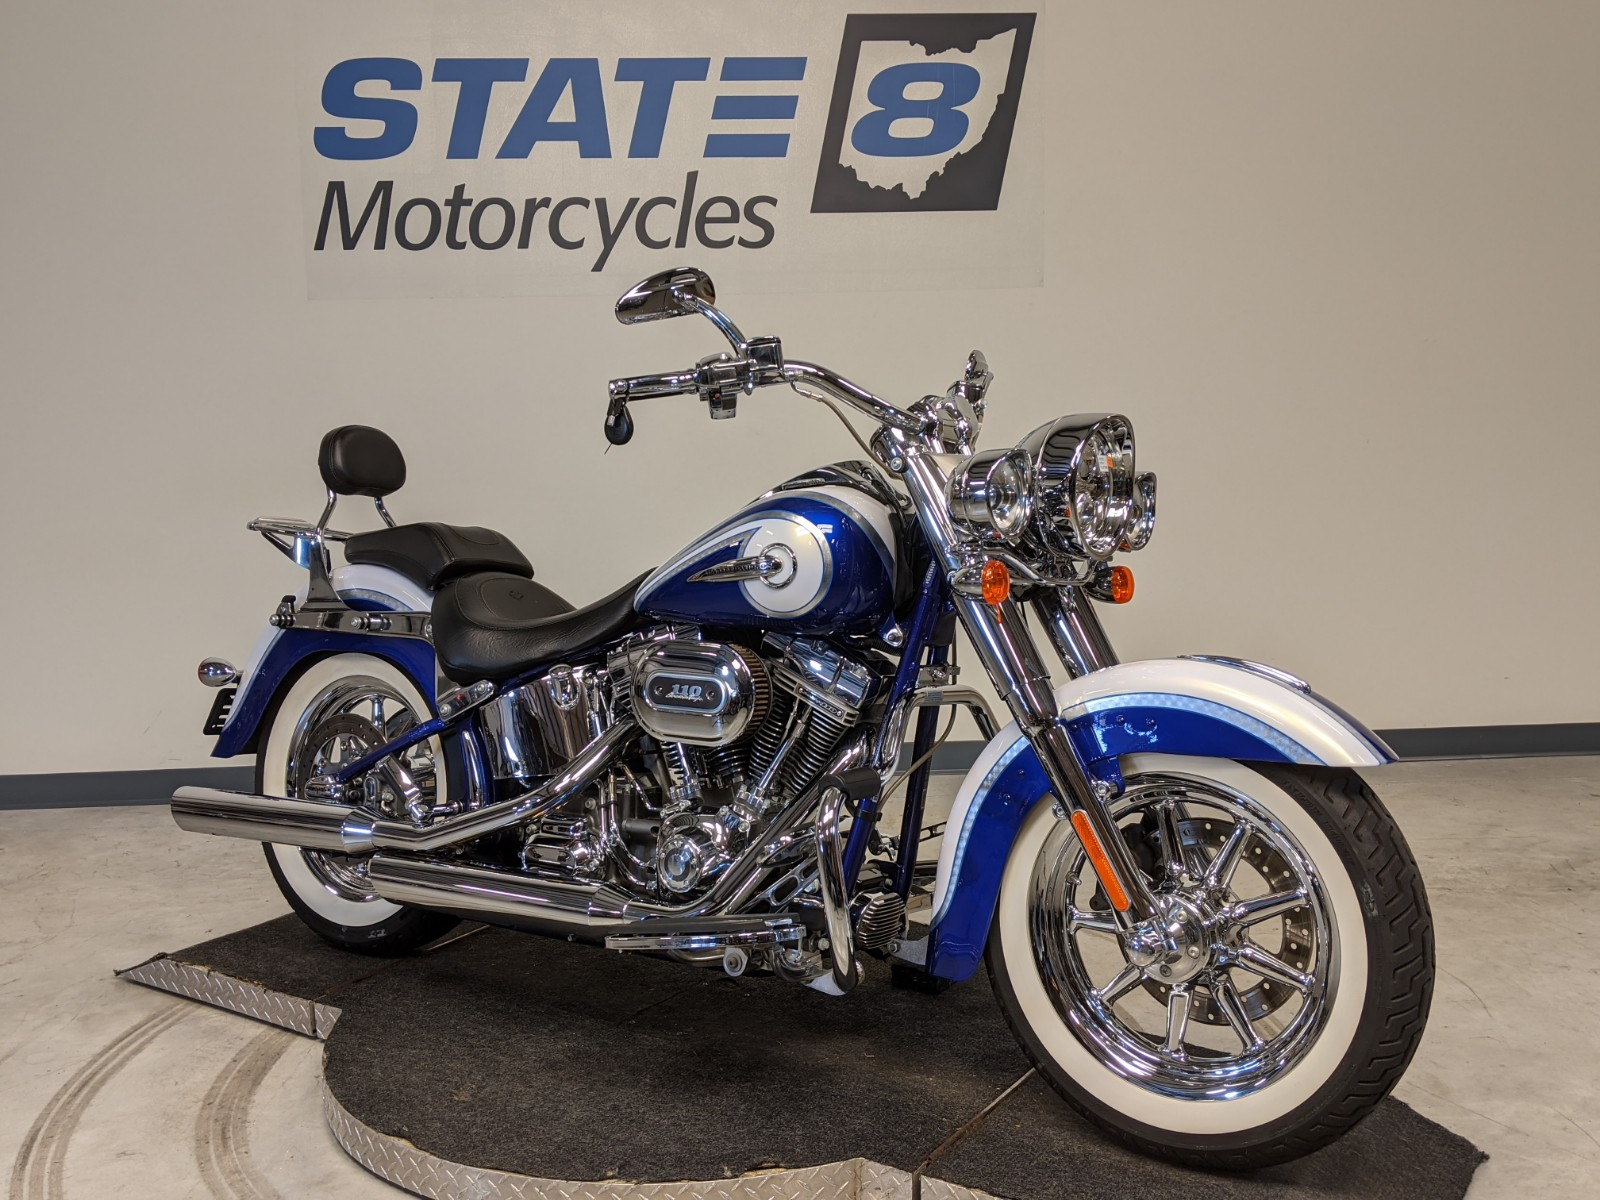 2014 Harley Davidson Softail Cvo Deluxe Flstnse For Sale In Peninsula Oh State 8 Motorcycles